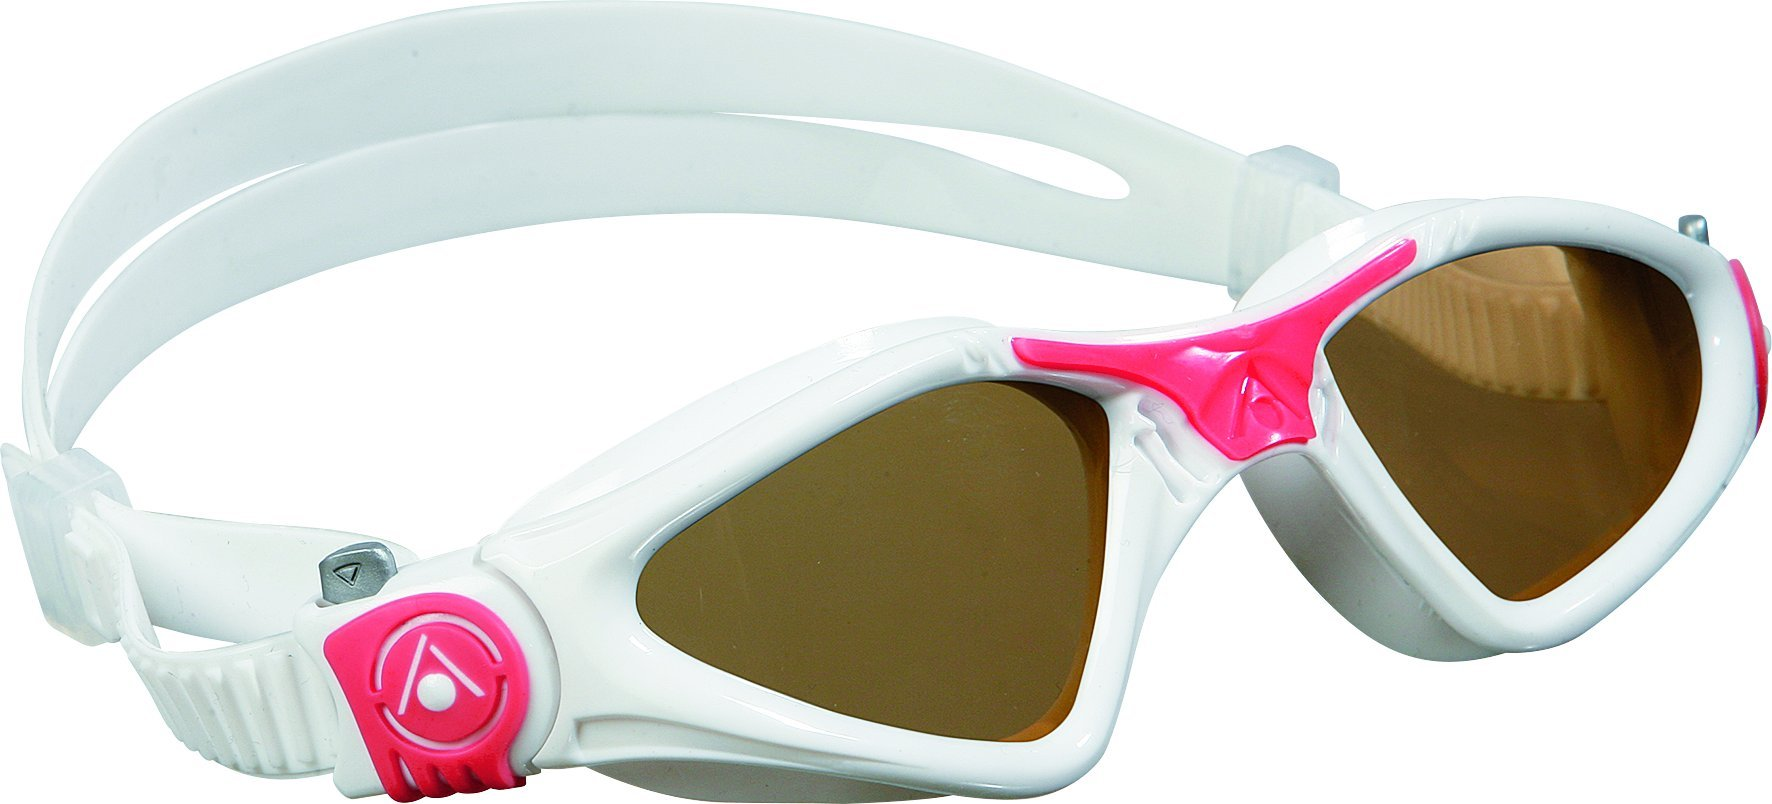 Aqua Sphere Kayenne Ladies Swimming Goggles Smoke Lens, White & Coral UV Protection Anti Fog Swim Goggles for Women by Aqua Sphere (Image #1)